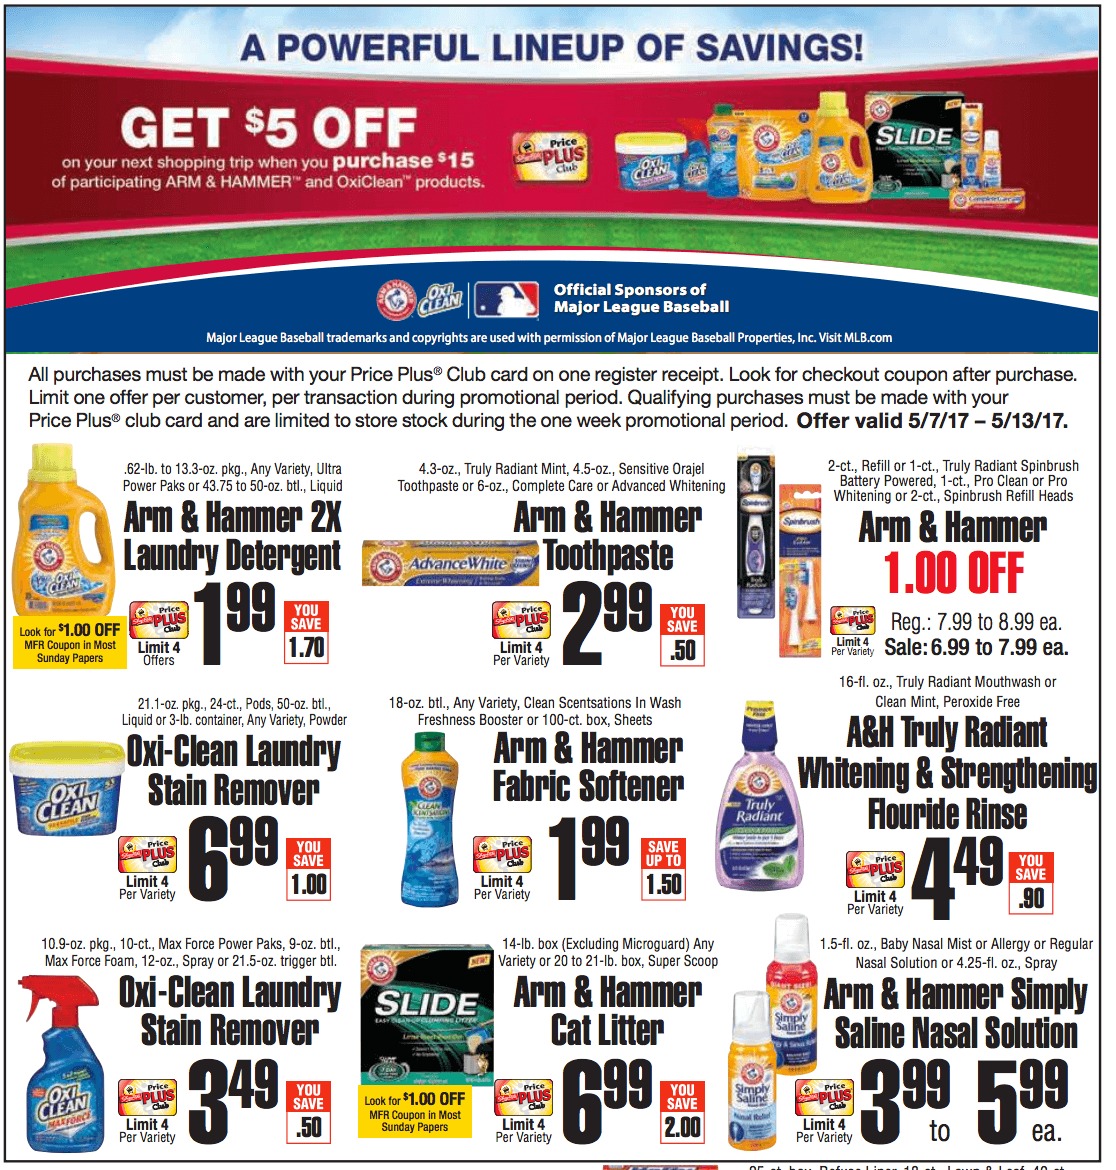 Confirmed! 5 Better Than Free Arm & Hammer Laundry Care Items At - Free Printable Coupons For Arm And Hammer Laundry Detergent